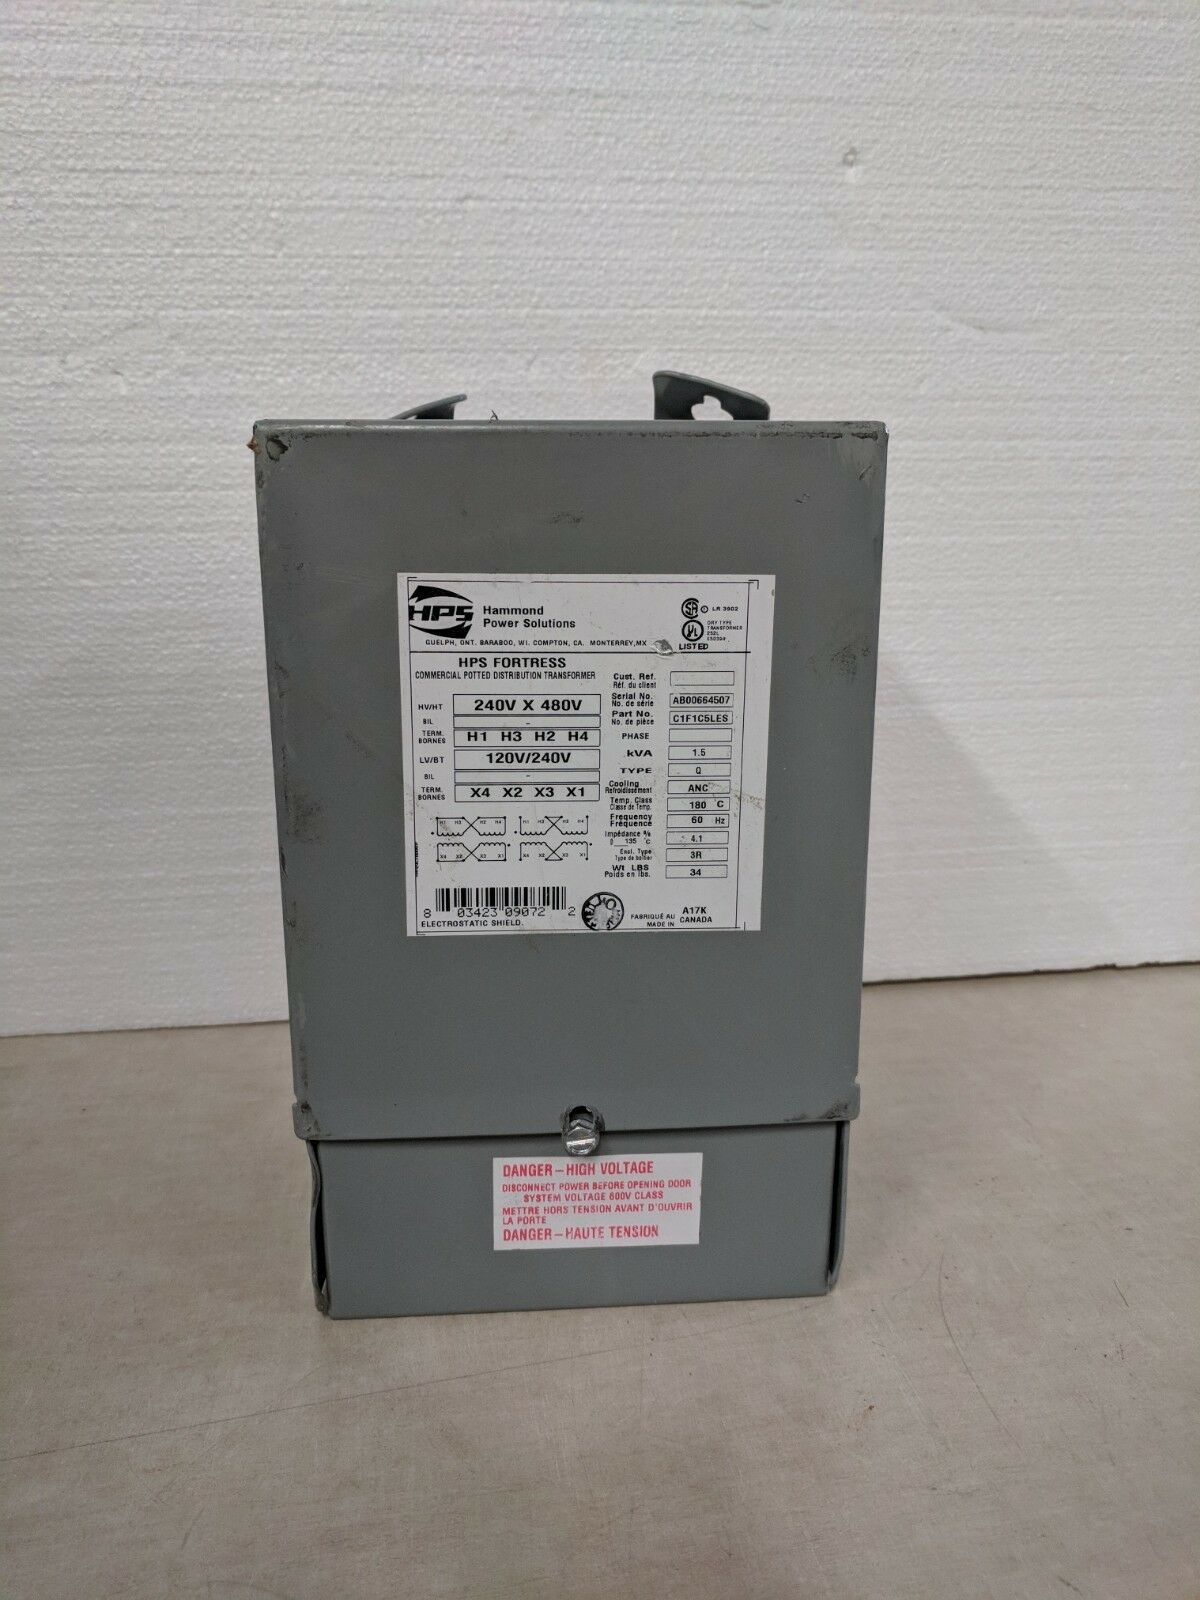 HAMMOND POWER SOLUTIONS INC C1F1C5LES, TRANSFORMER, HPS FORTRESS SERIE,